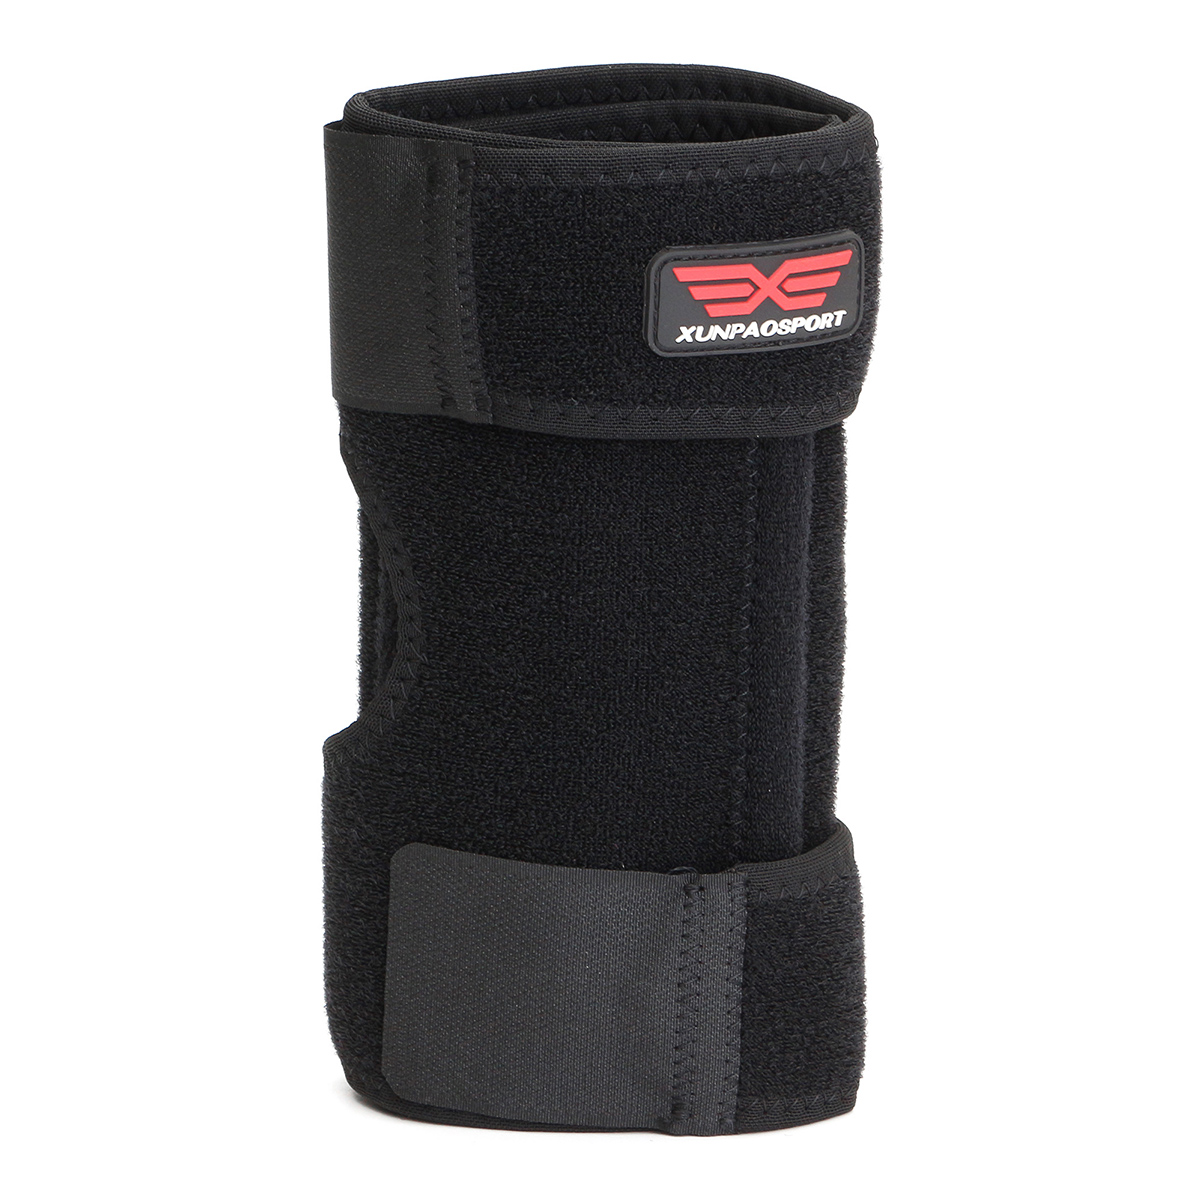 Sports Adjustable Thigh Kneepad Support Brace Strap Wrap Pain Relief Training Protector